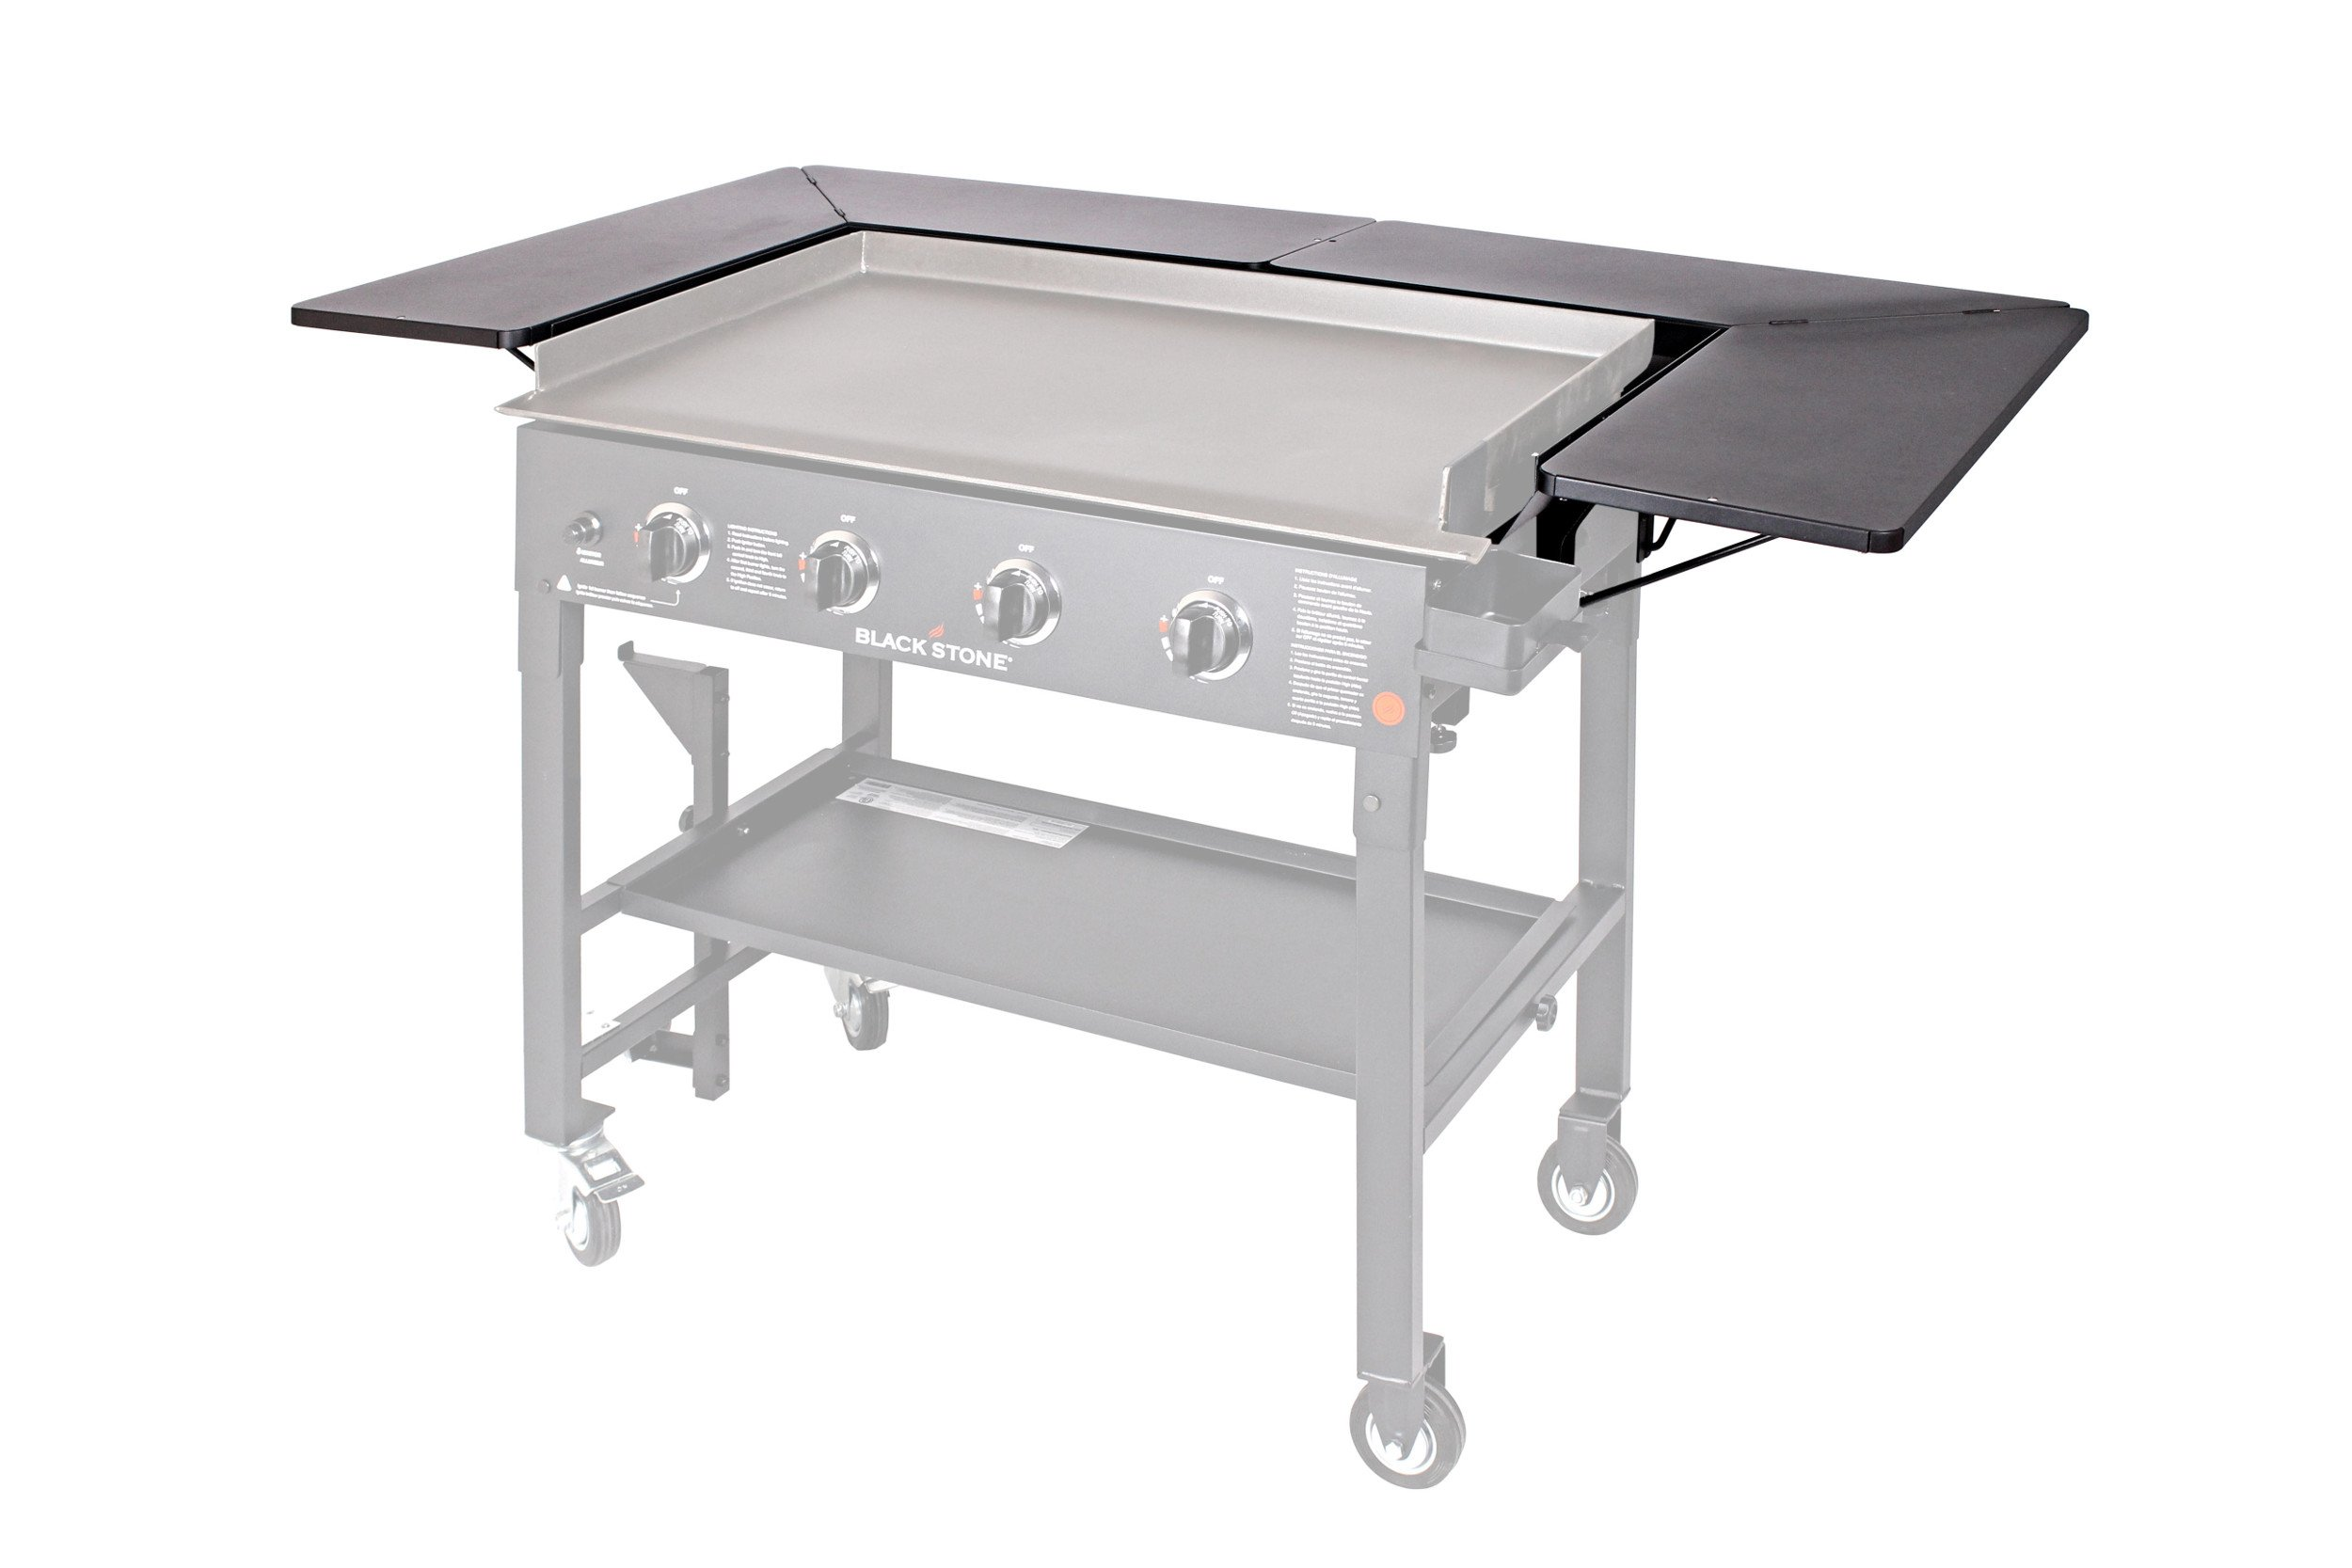 Blackstone Signature Accessories - 36 Inch Griddle Surround Table Accessory - Powder Coated Steel (Grill not Included and Doesn't fit The 36'' Griddle with New Rear Grease Model) by Blackstone